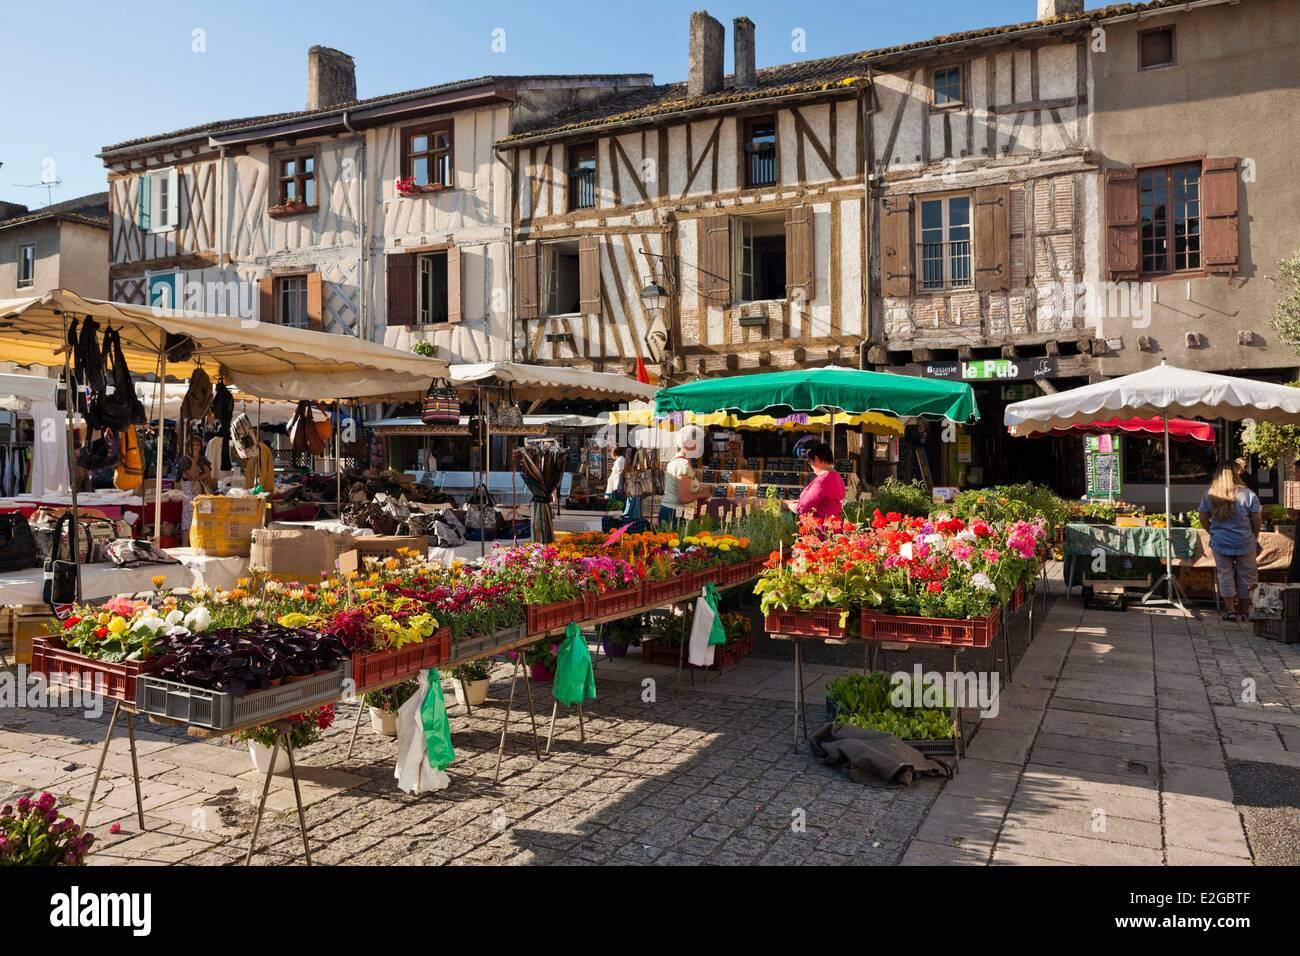 Image result for images of market in Eymet